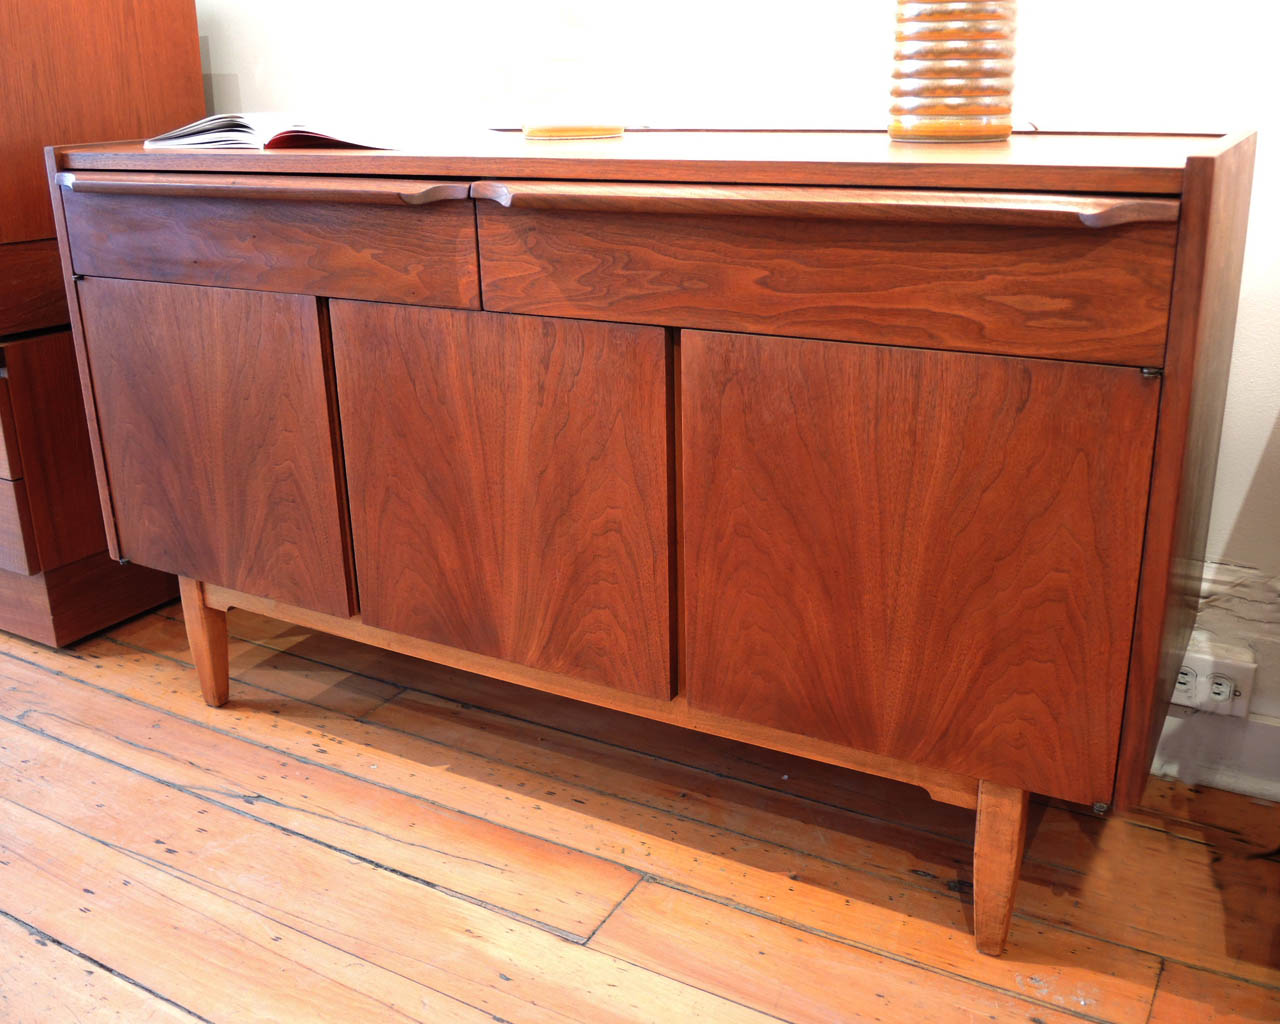 Mid Century Modern Credenza INabstracto : walnut credenza from inabstracto.wordpress.com size 1280 x 1024 jpeg 175kB